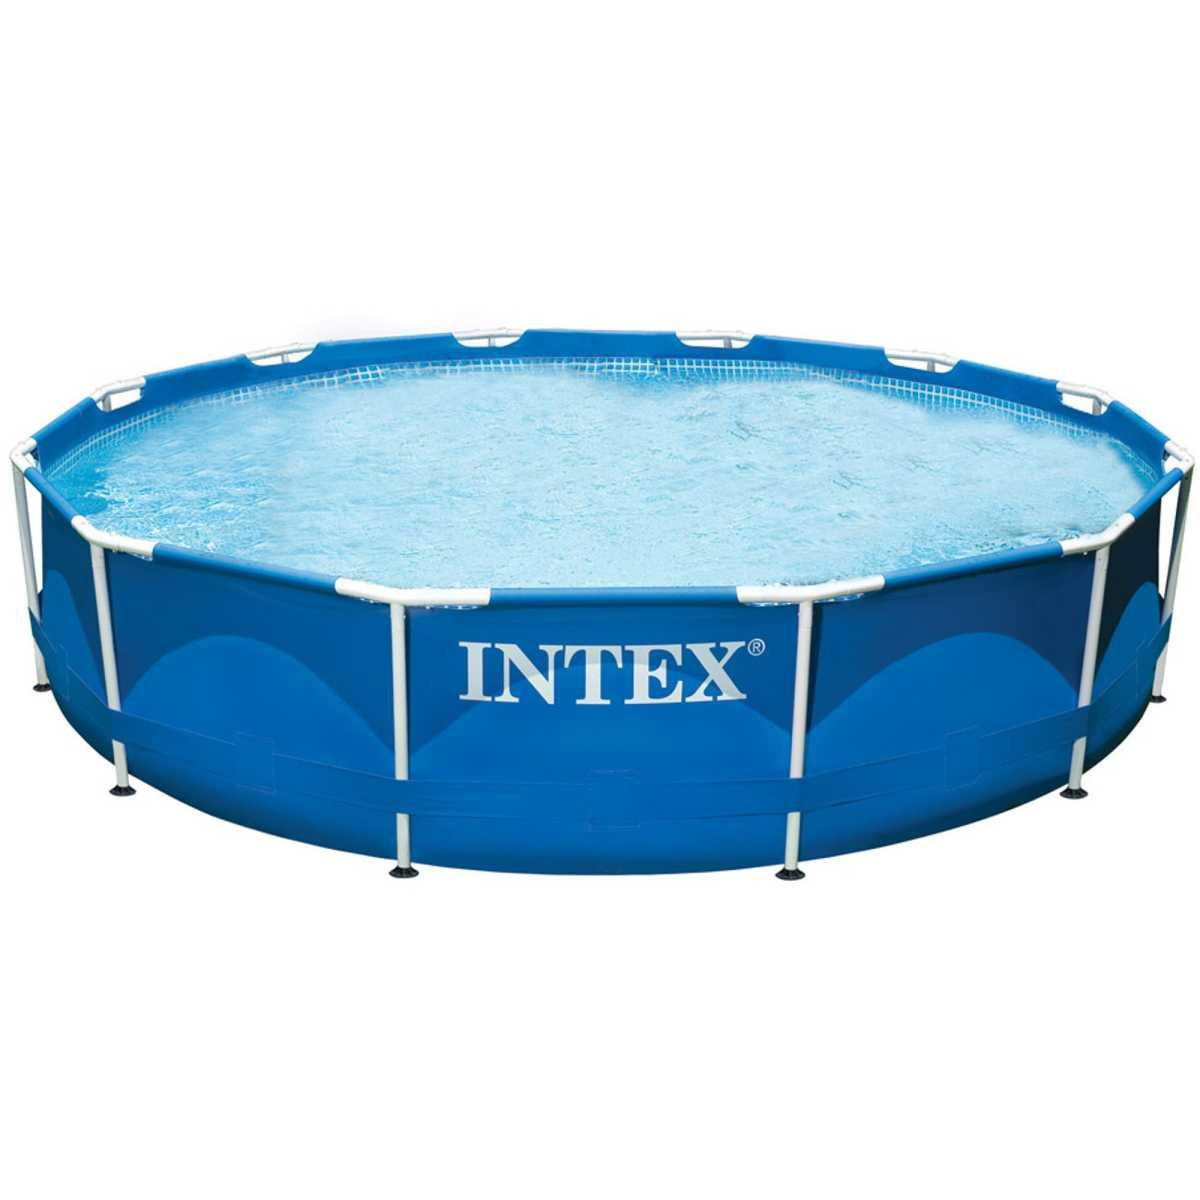 Intex Vs Bestway Review Intex 10 Foot Frame Pool